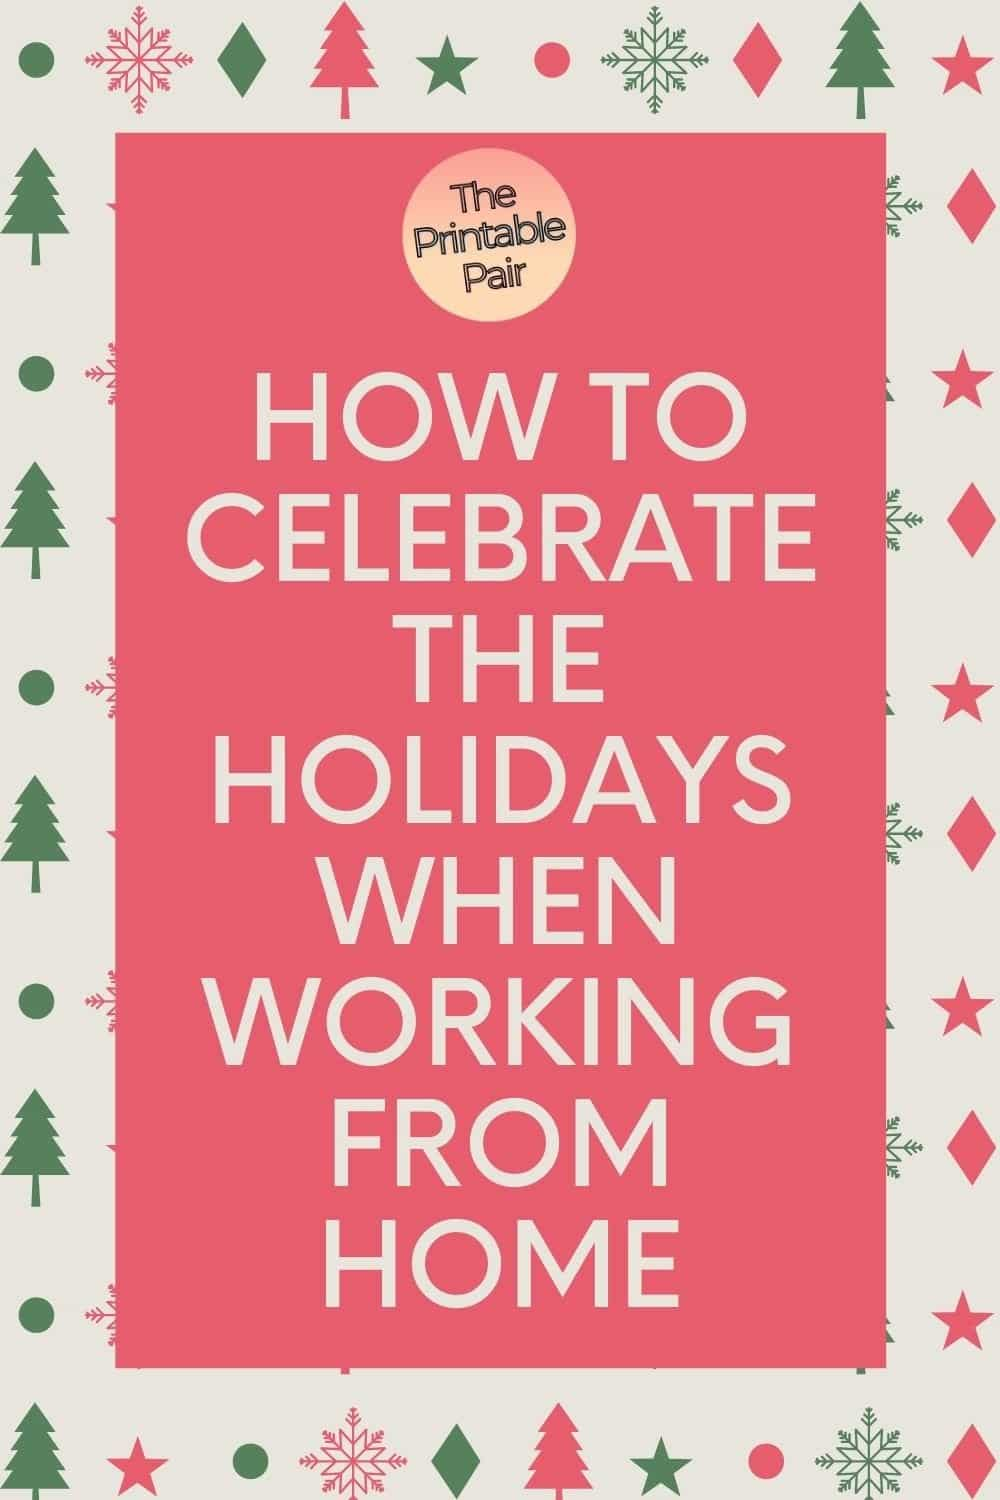 How to Celebrate the Holidays When Working From Home